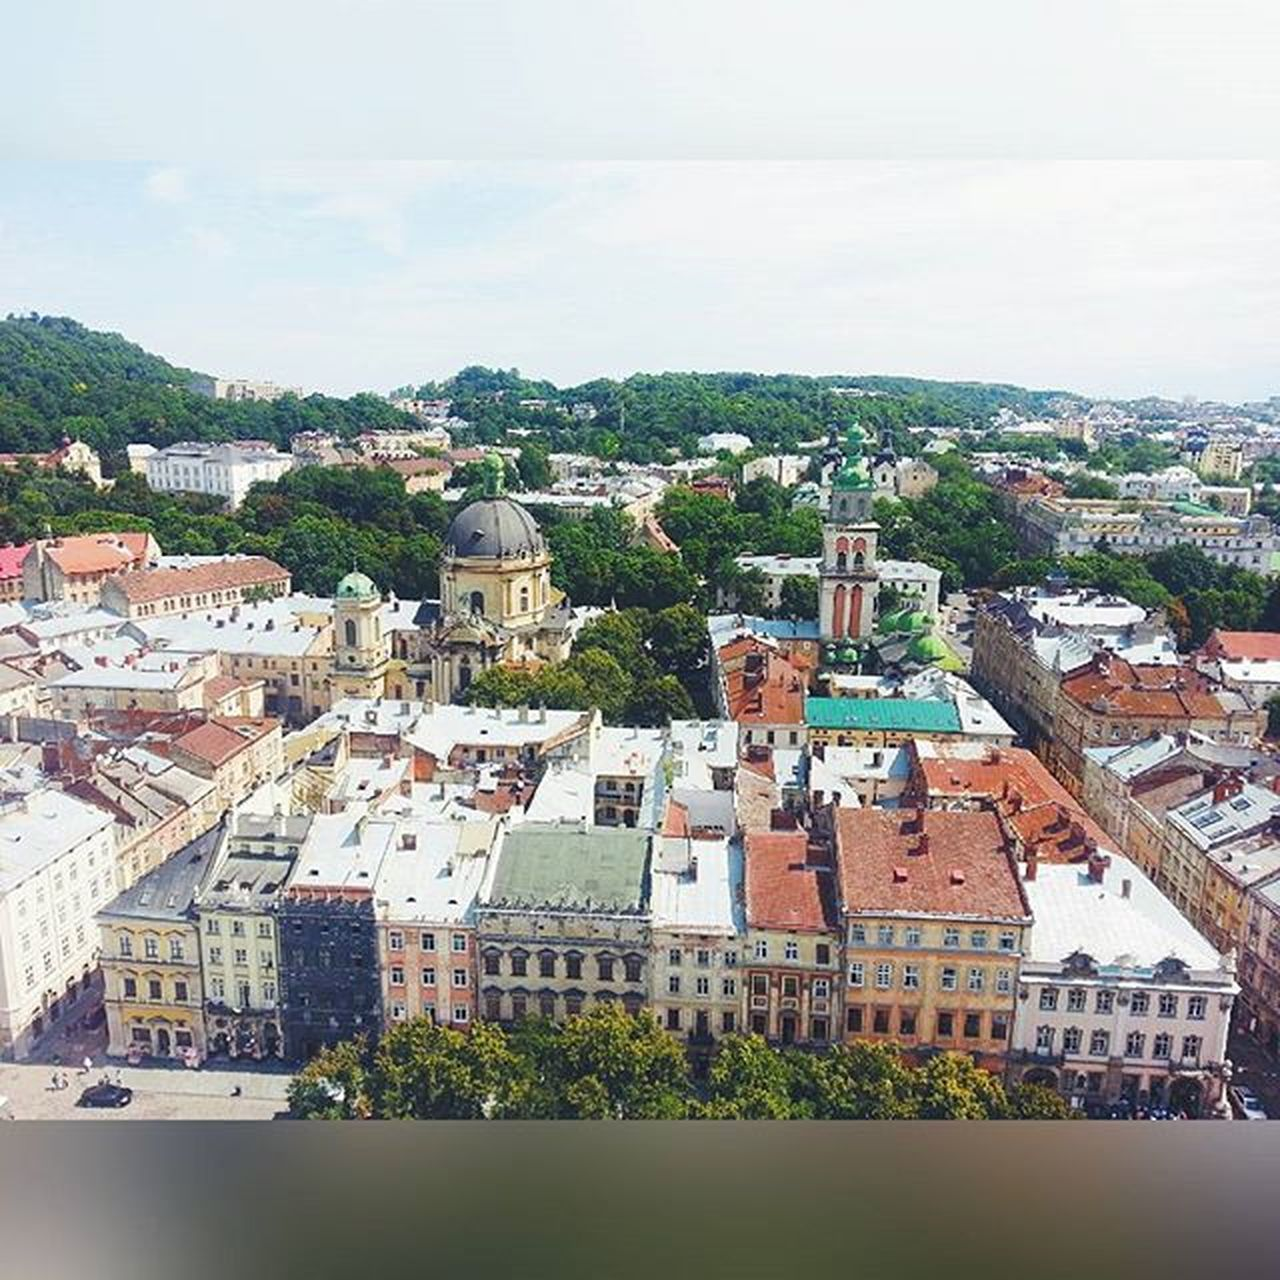 💖 Vscoukraine Lvivforyou Lviv Ukrainianblog Ukraine Lvivblog Lvivgram Panorama Rooftop City Home Tourist Touristattraction Travel Travelblog Love Building Church Old Ancient Country Walk Street Lvivua Adore